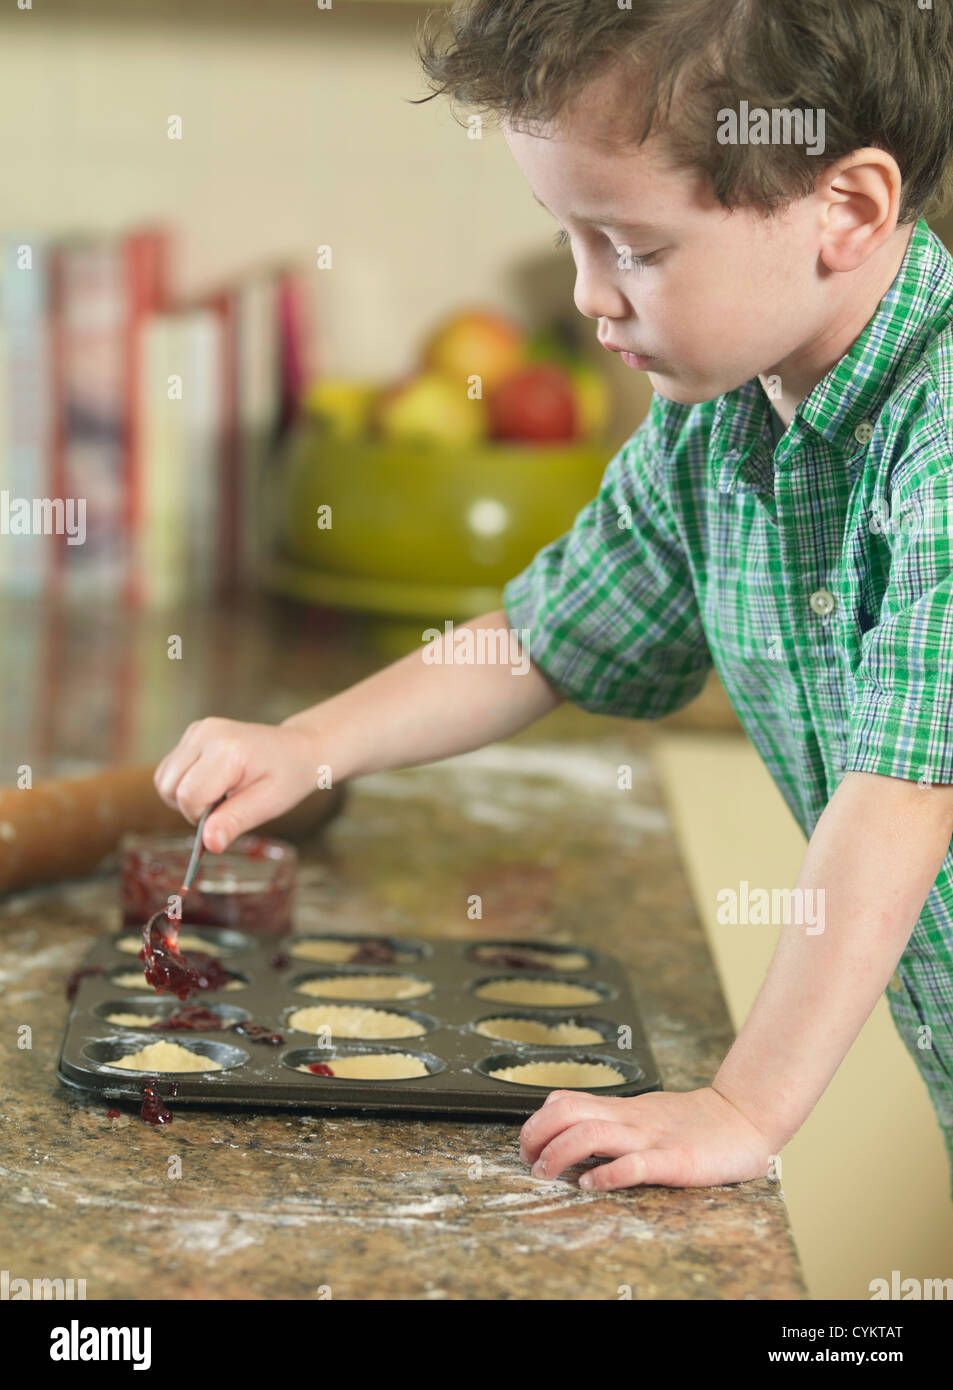 Boy spooning batter into pan in kitchen Stock Photo